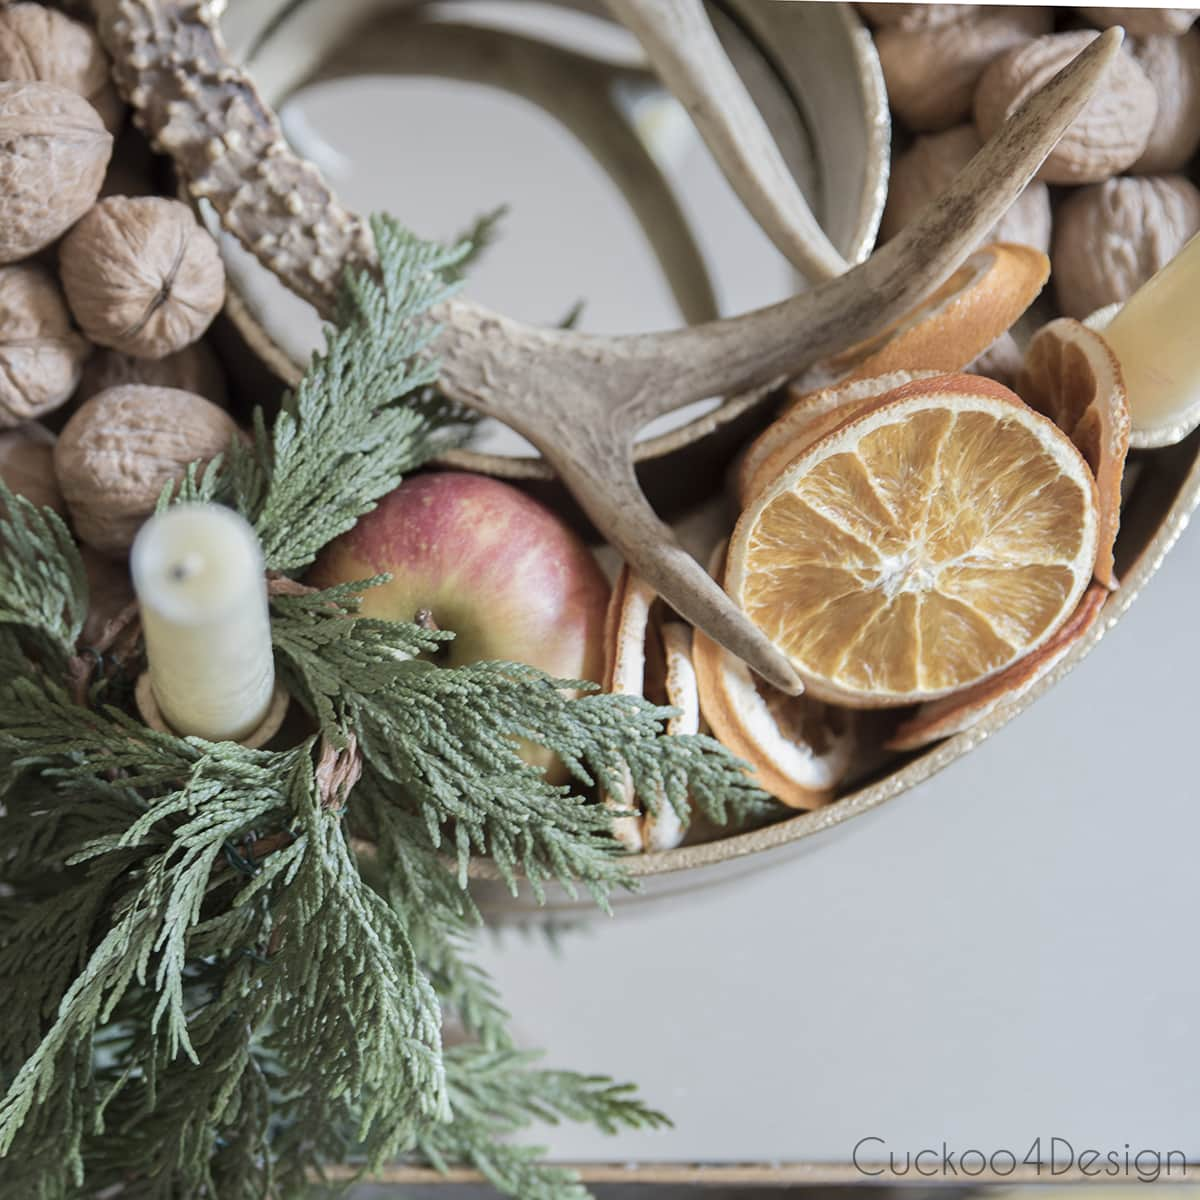 advent wreath on gold tray with nuts, dried oranges, apples, cedar and antlers